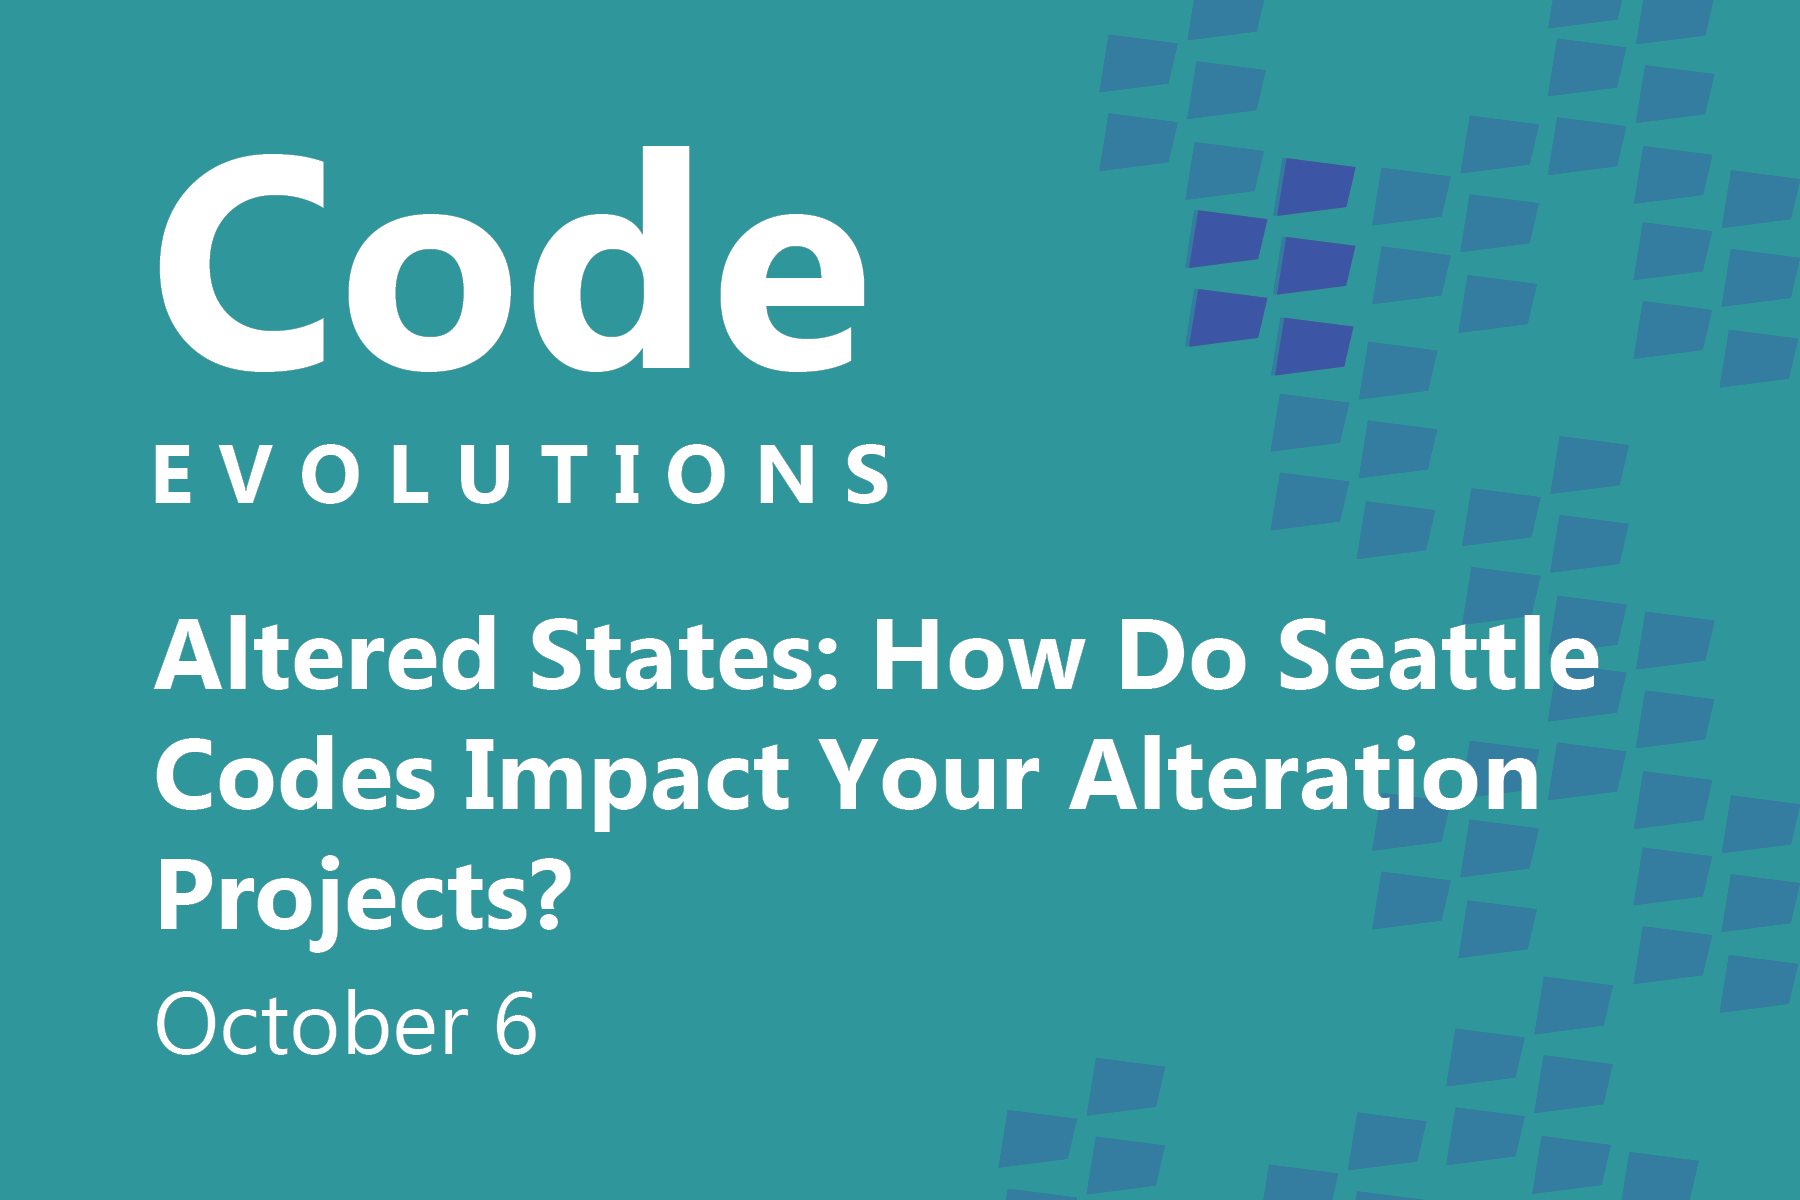 This page is intended only for participants of Code Evolutions: Altered States – How Do Seattle Codes Impact Your Alteration Projects?